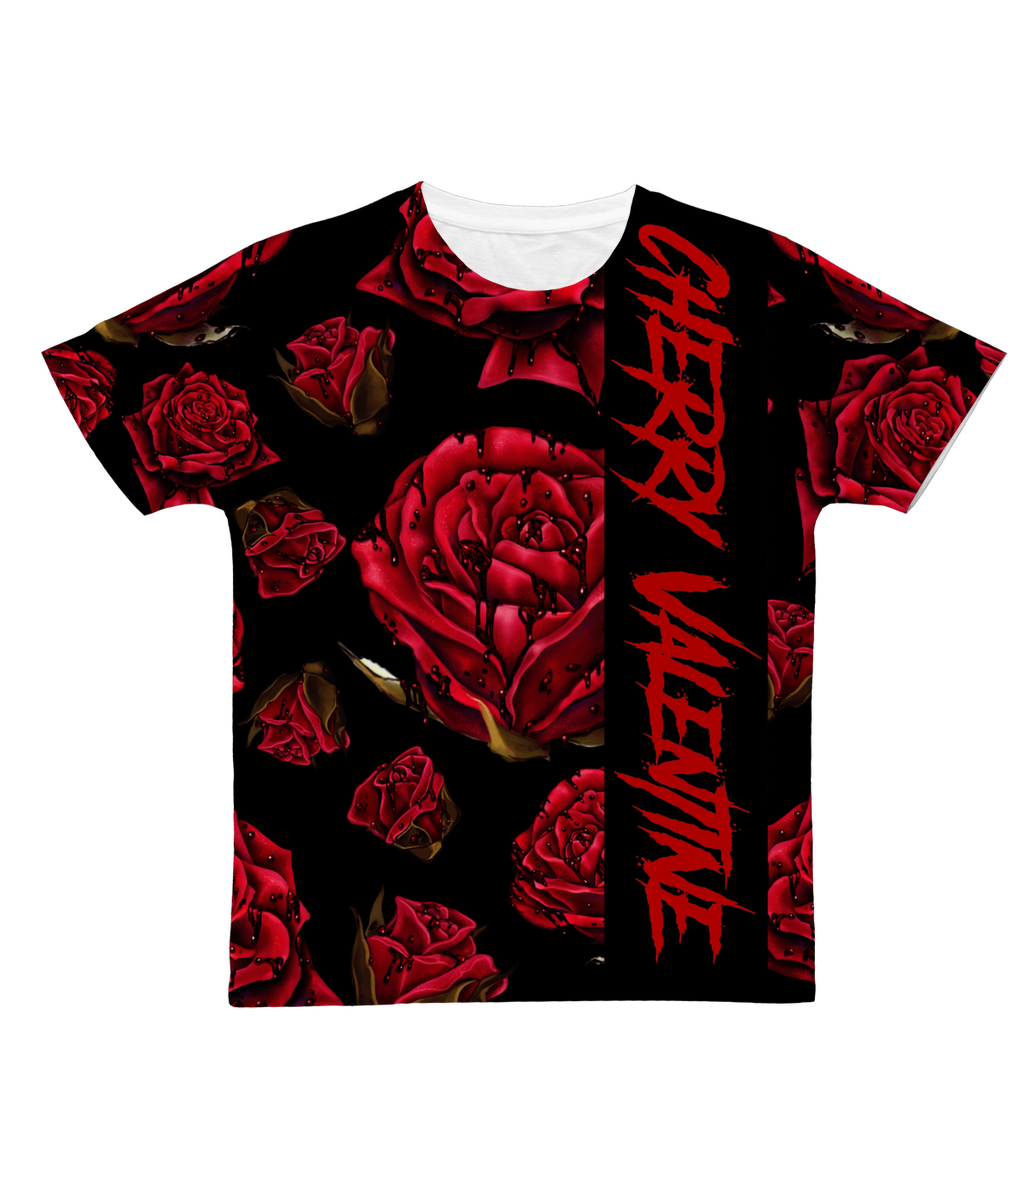 Cherry Valentine - Rose Blood Sublimation T-Shirt